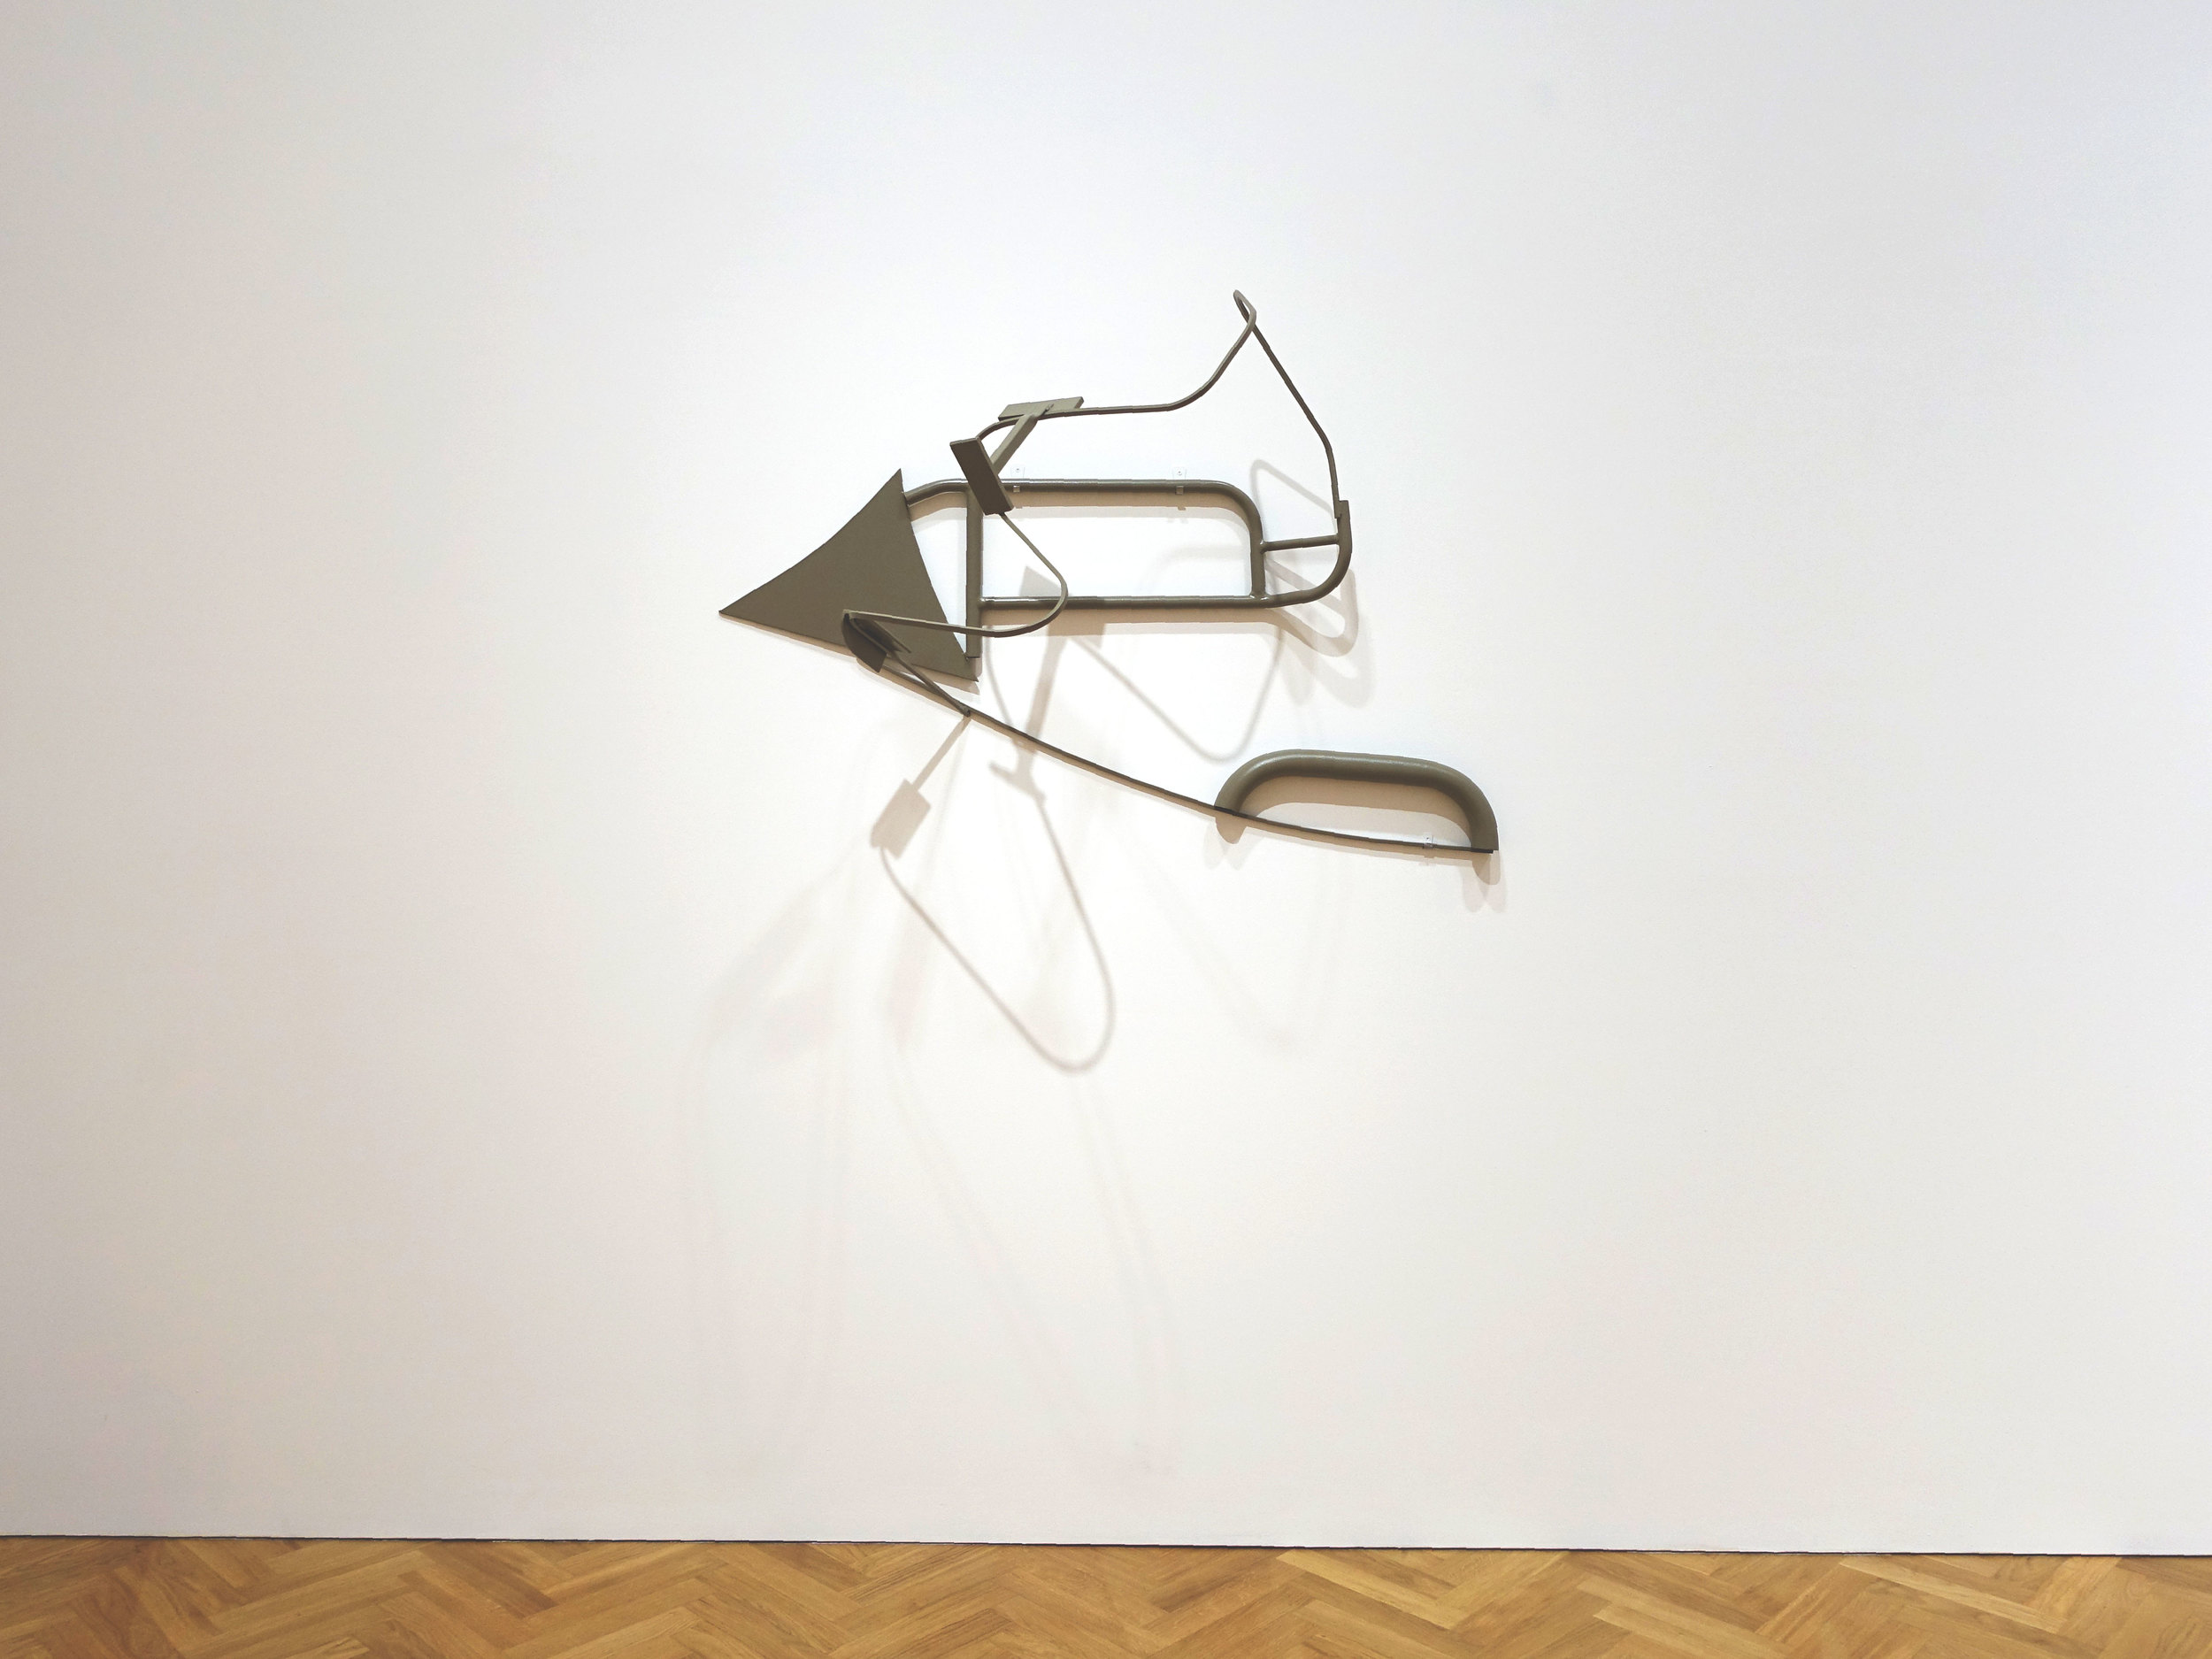 Anthony Caro at Pace London